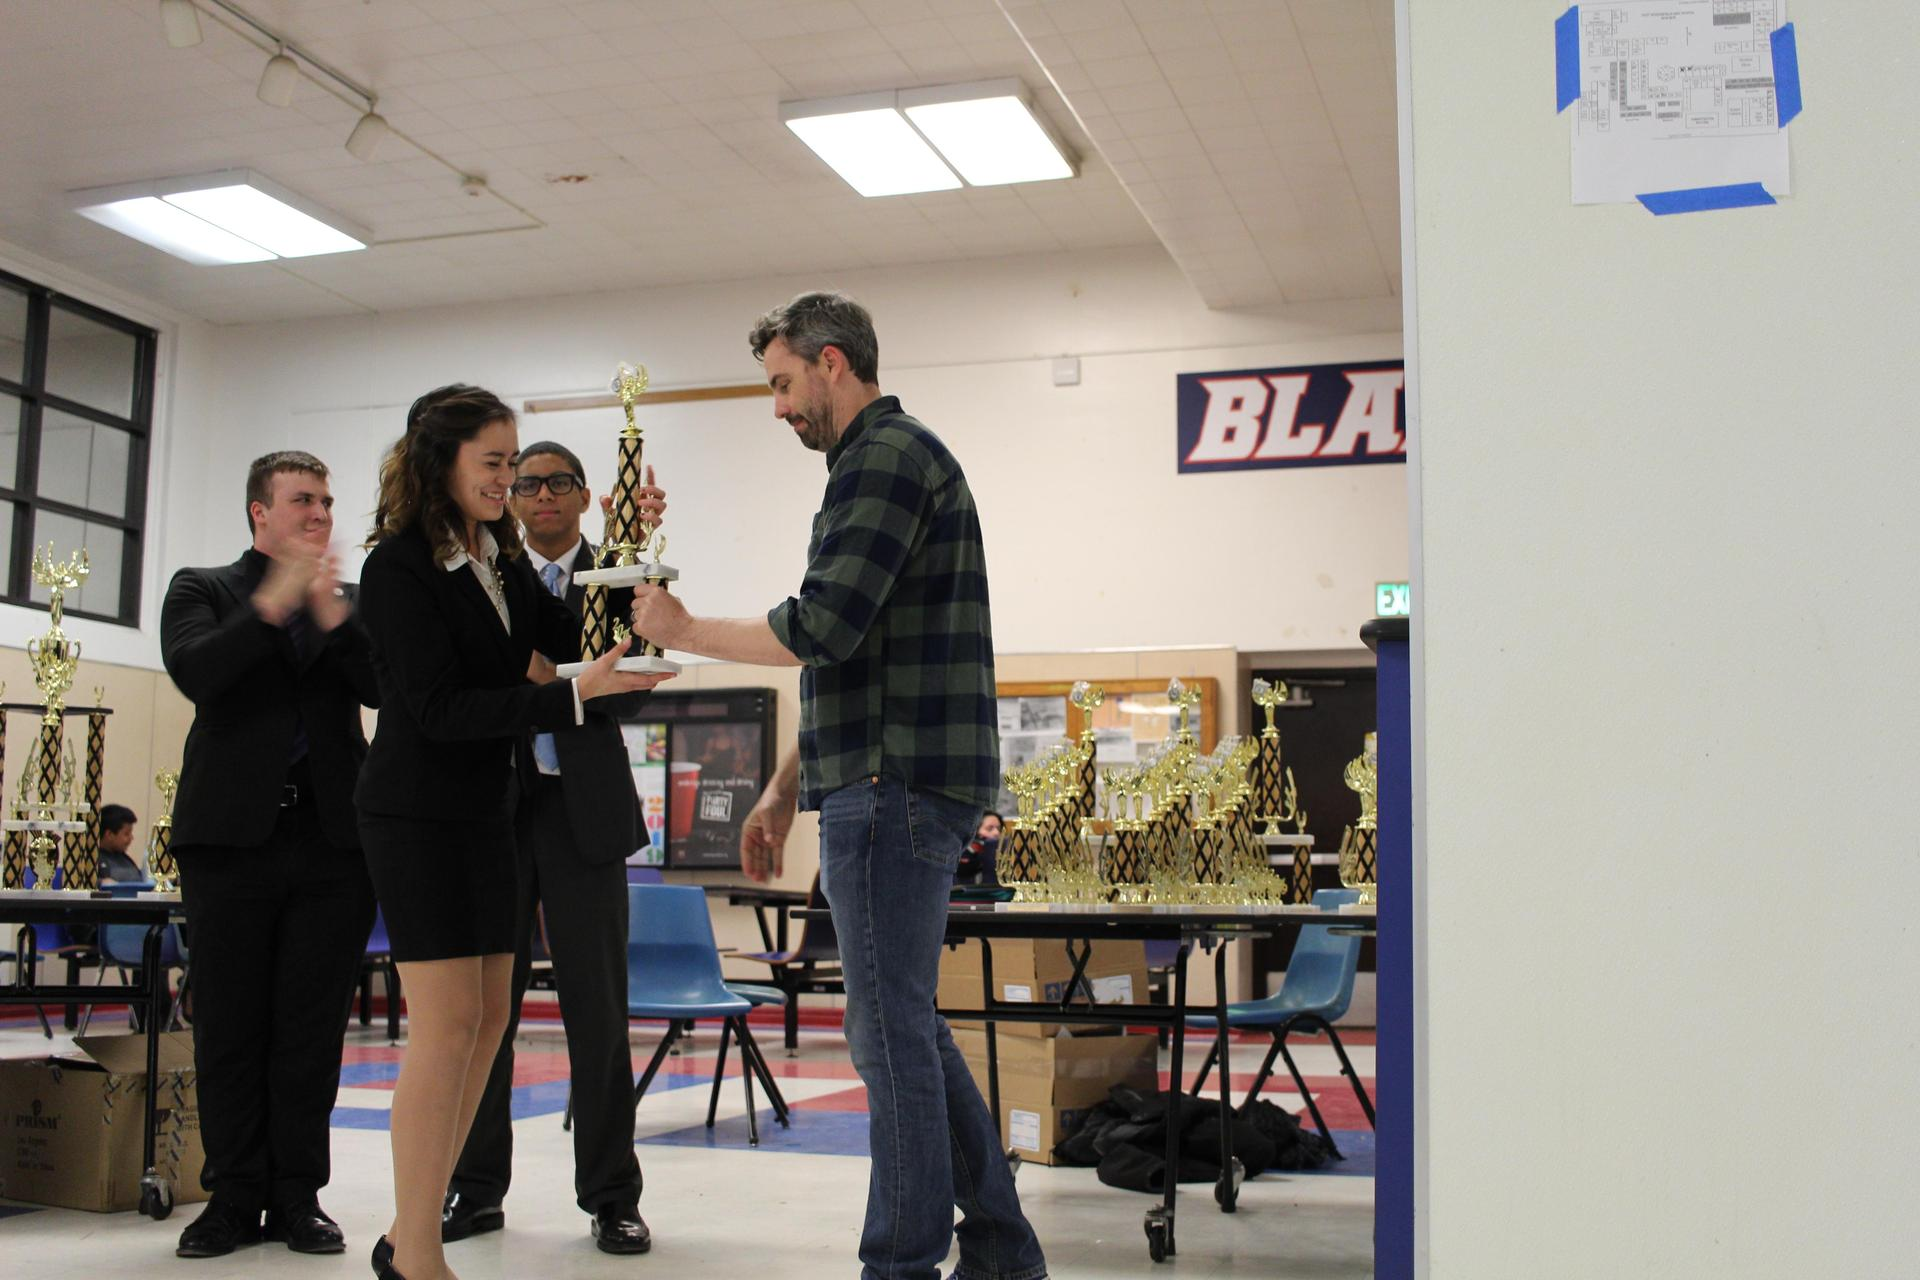 Andrea Jimenez receives the trophy for winning the Speech and Debate Valley Championship for Original Oratory.